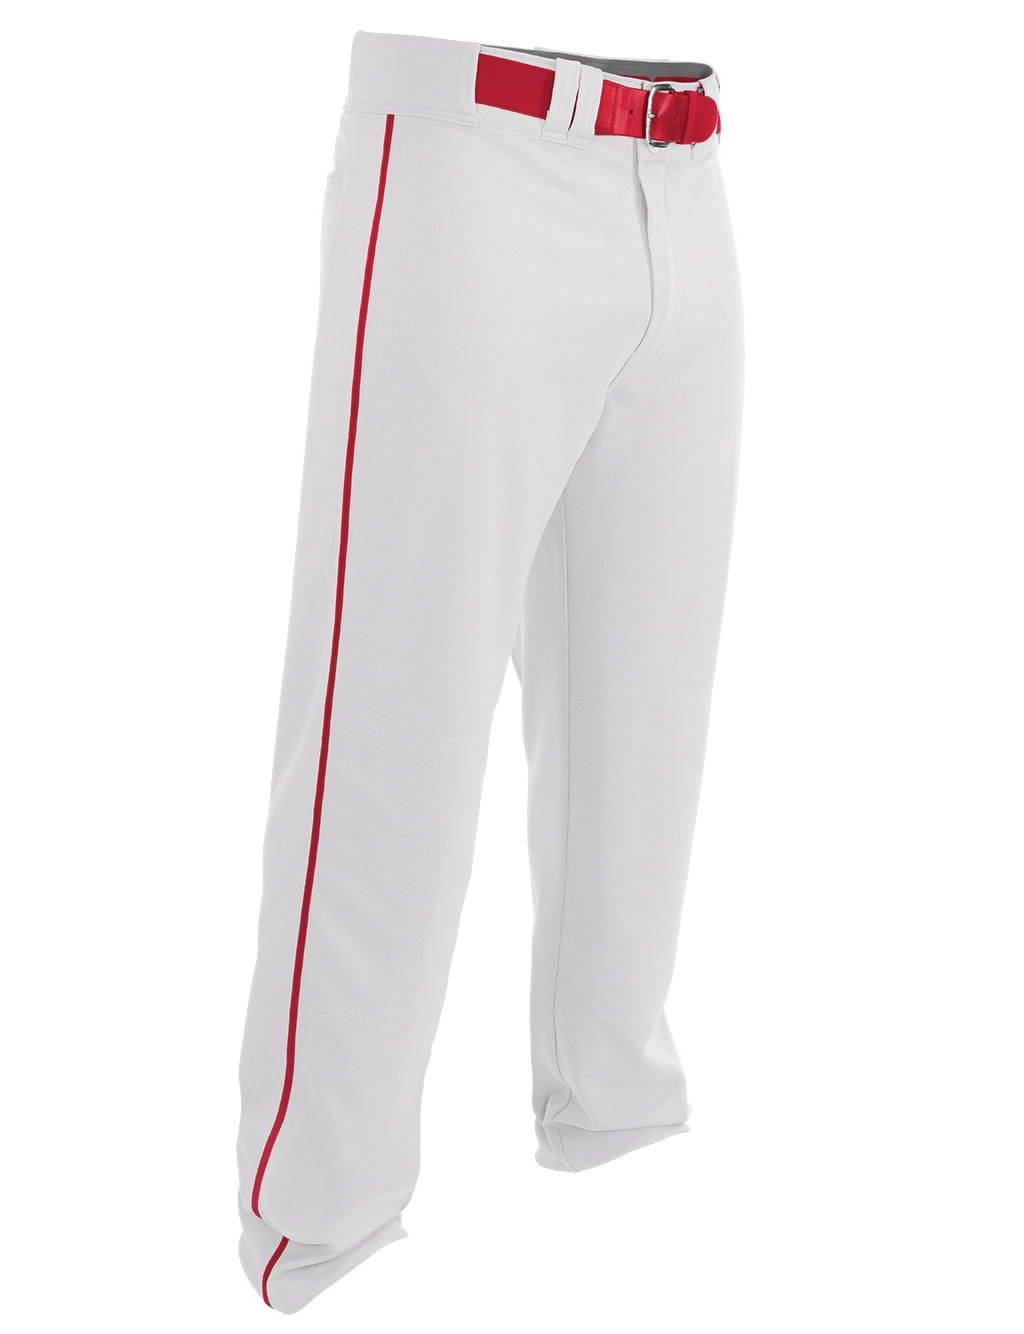 White-Red Rival 2 Youth Baseball Pant by Easton